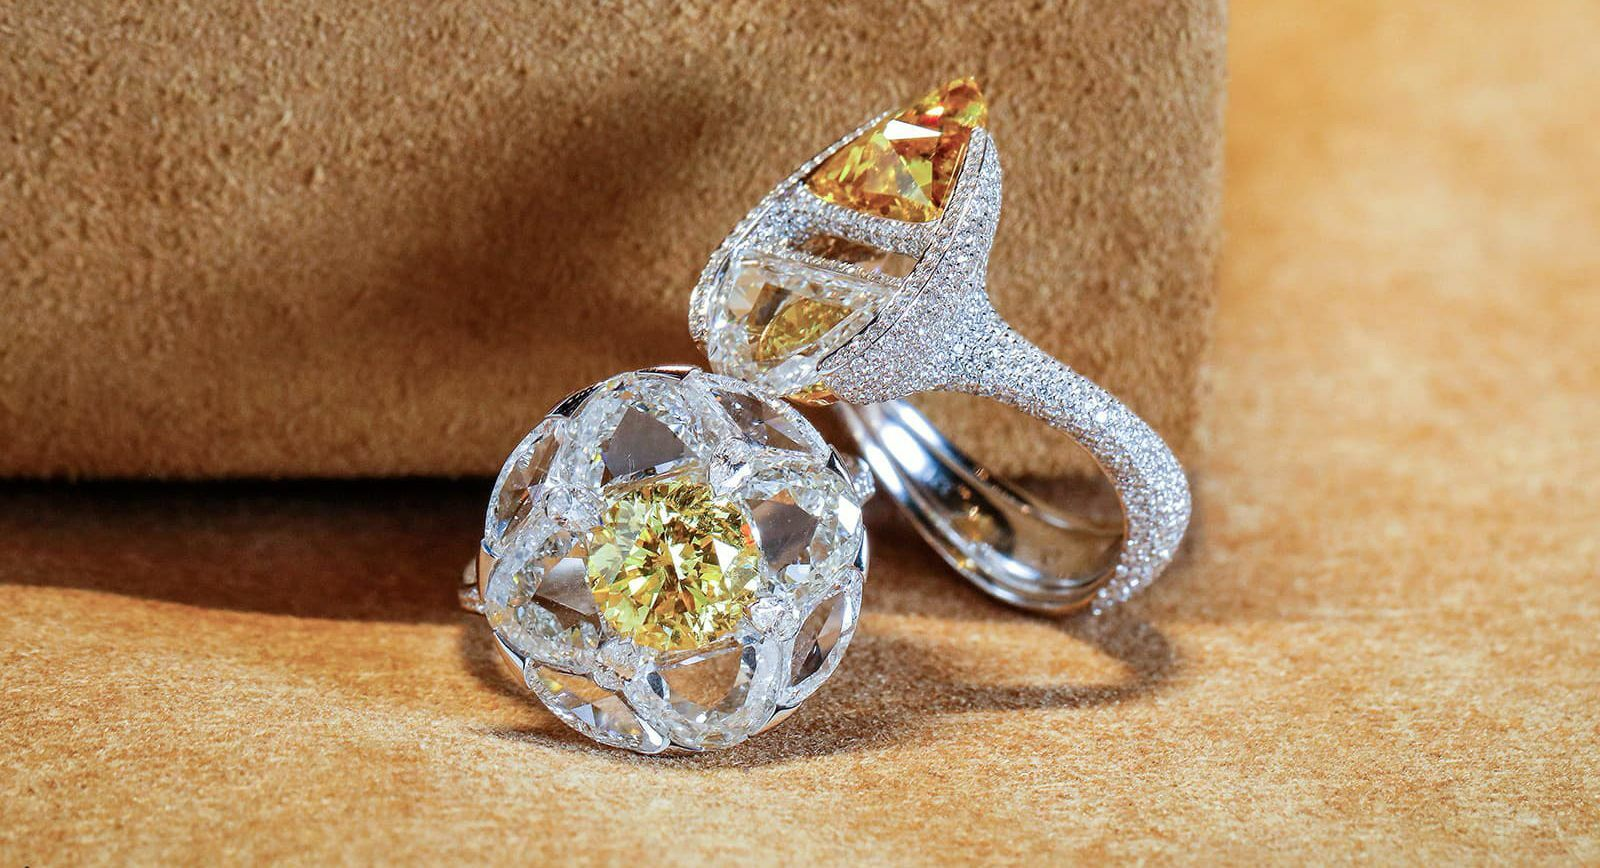 Boghossian floating diamond ring designs with yellow and colourless diamonds